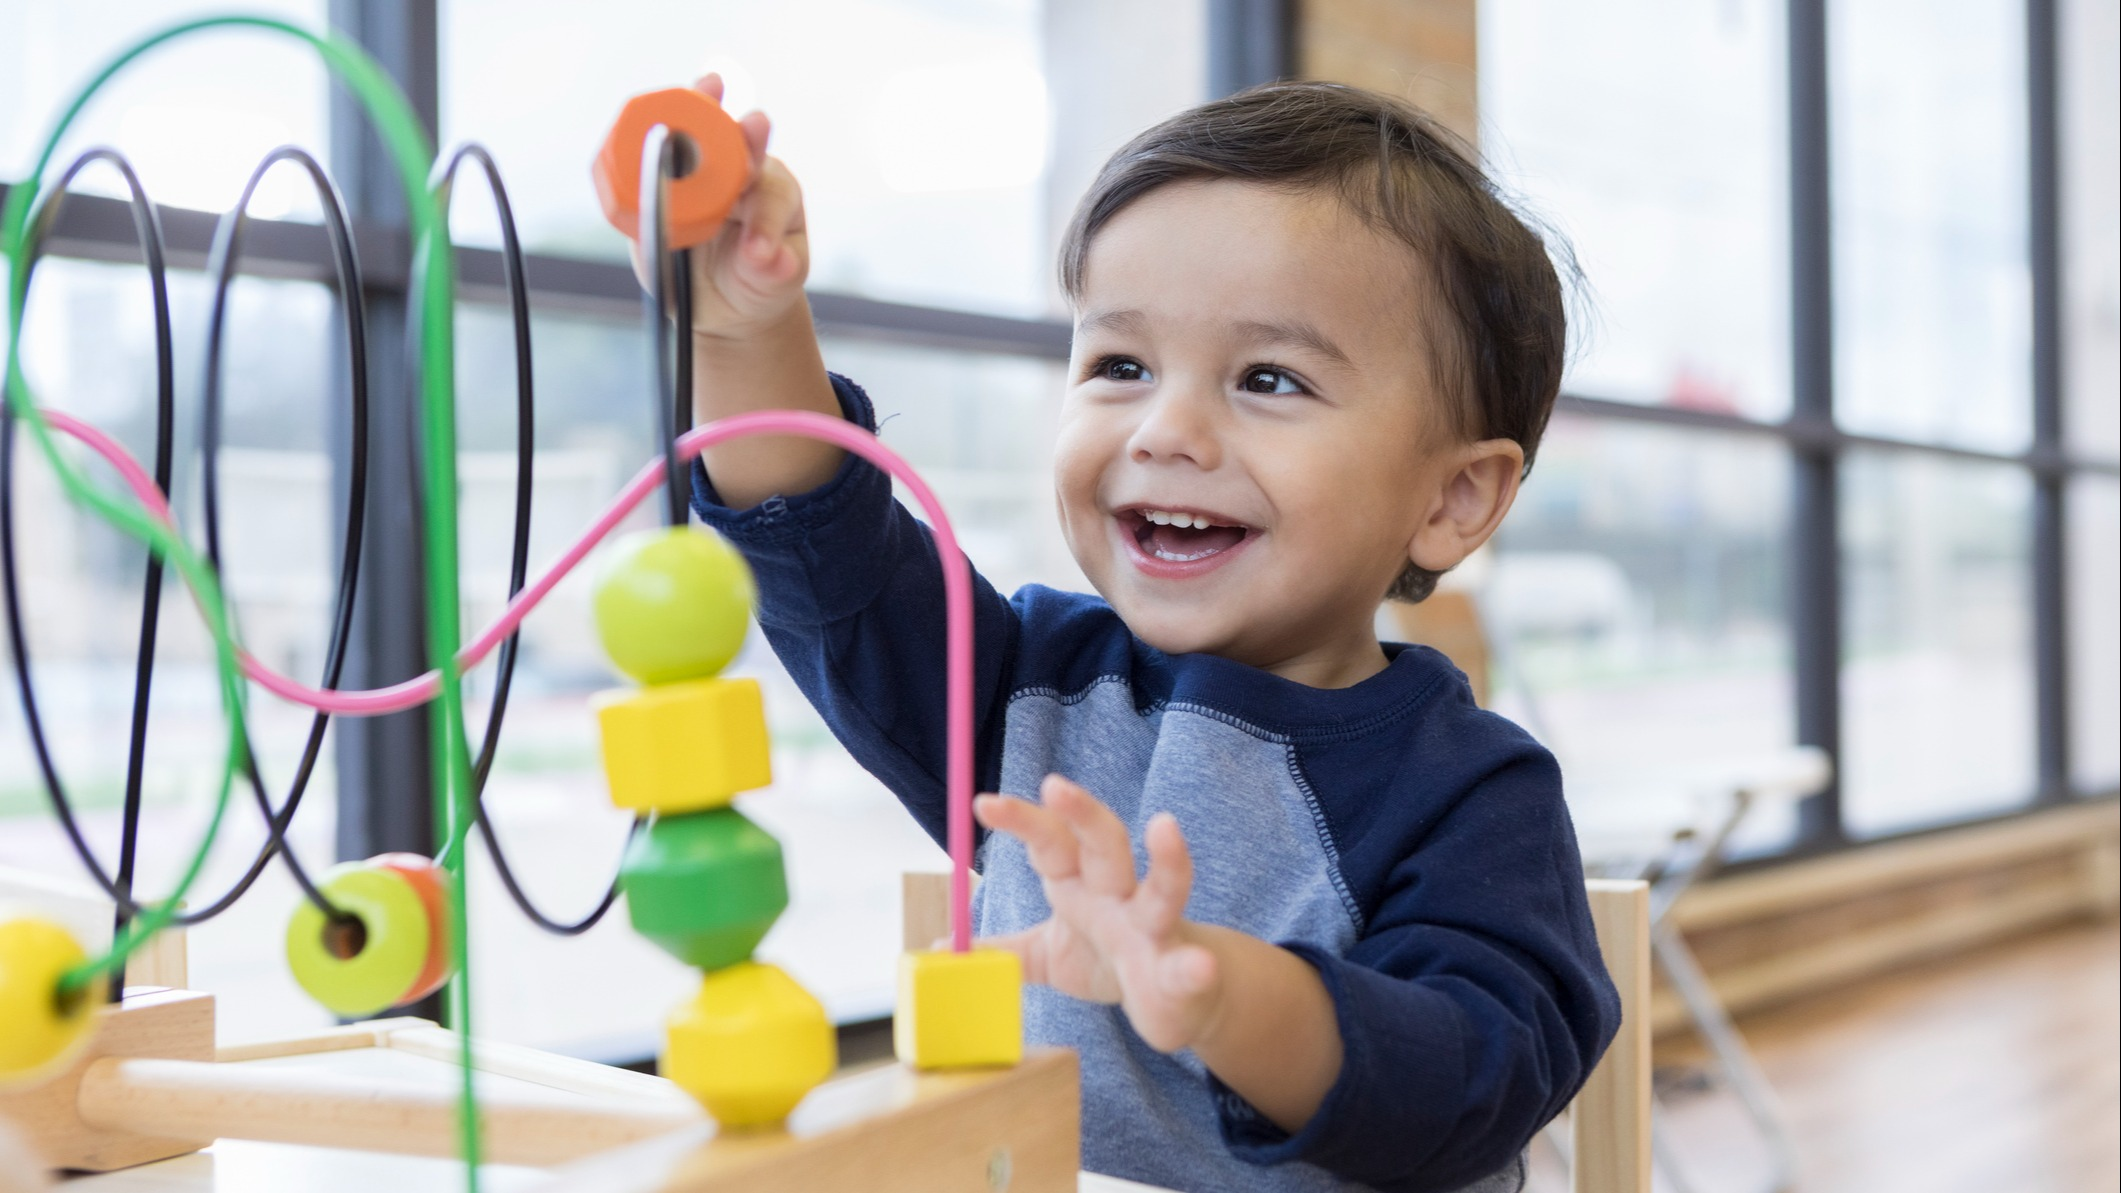 The Importance of Play in Promoting Healthy Child Development